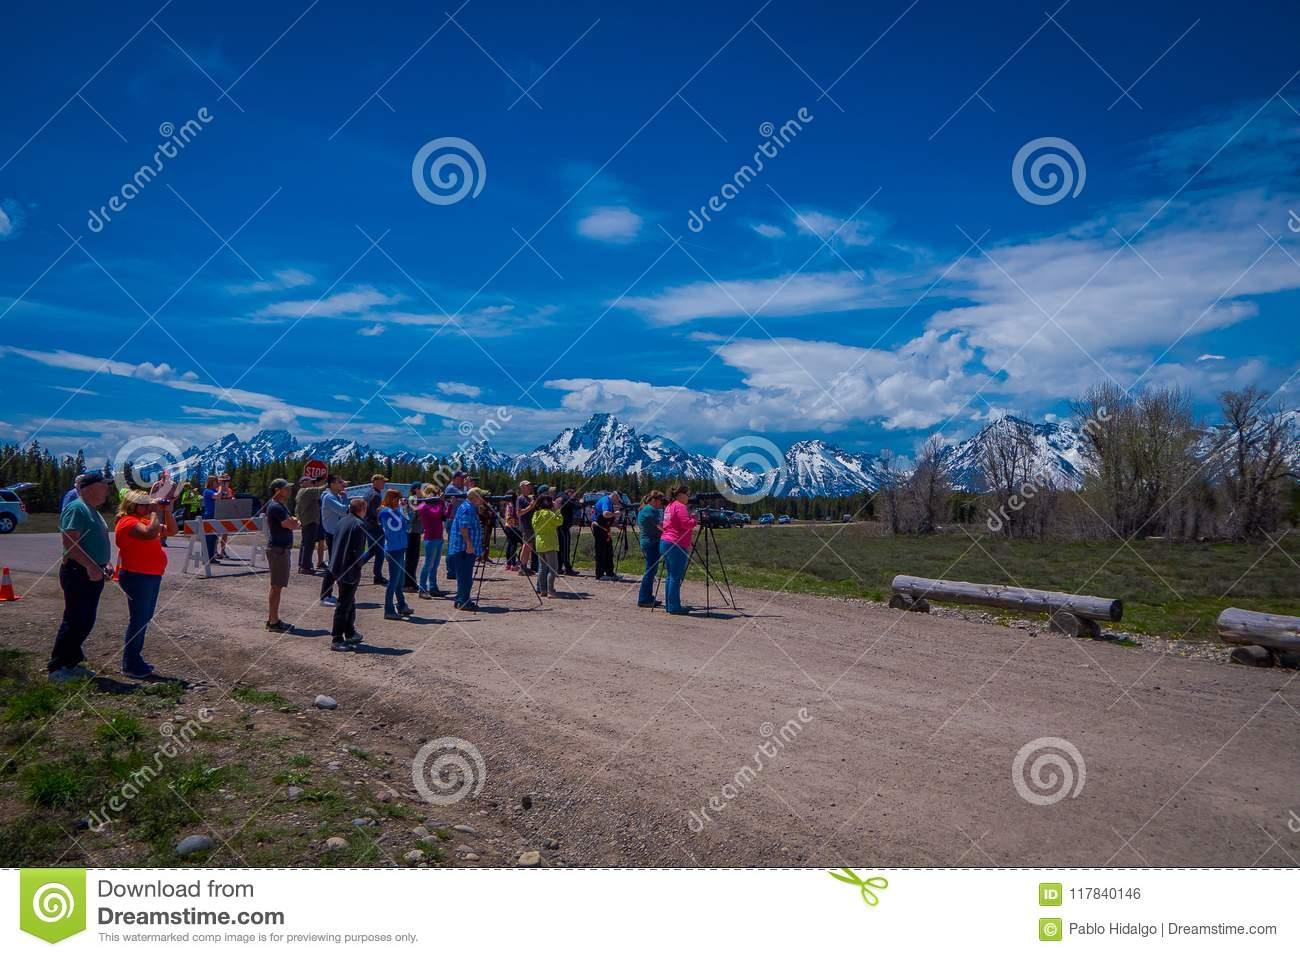 YELLOWSTONE MONTANA USA MAY 24 2018 Unidentified People Most Them Photographers Taking Pictures And Enjoying The Landscape Of Grand Teton National Park